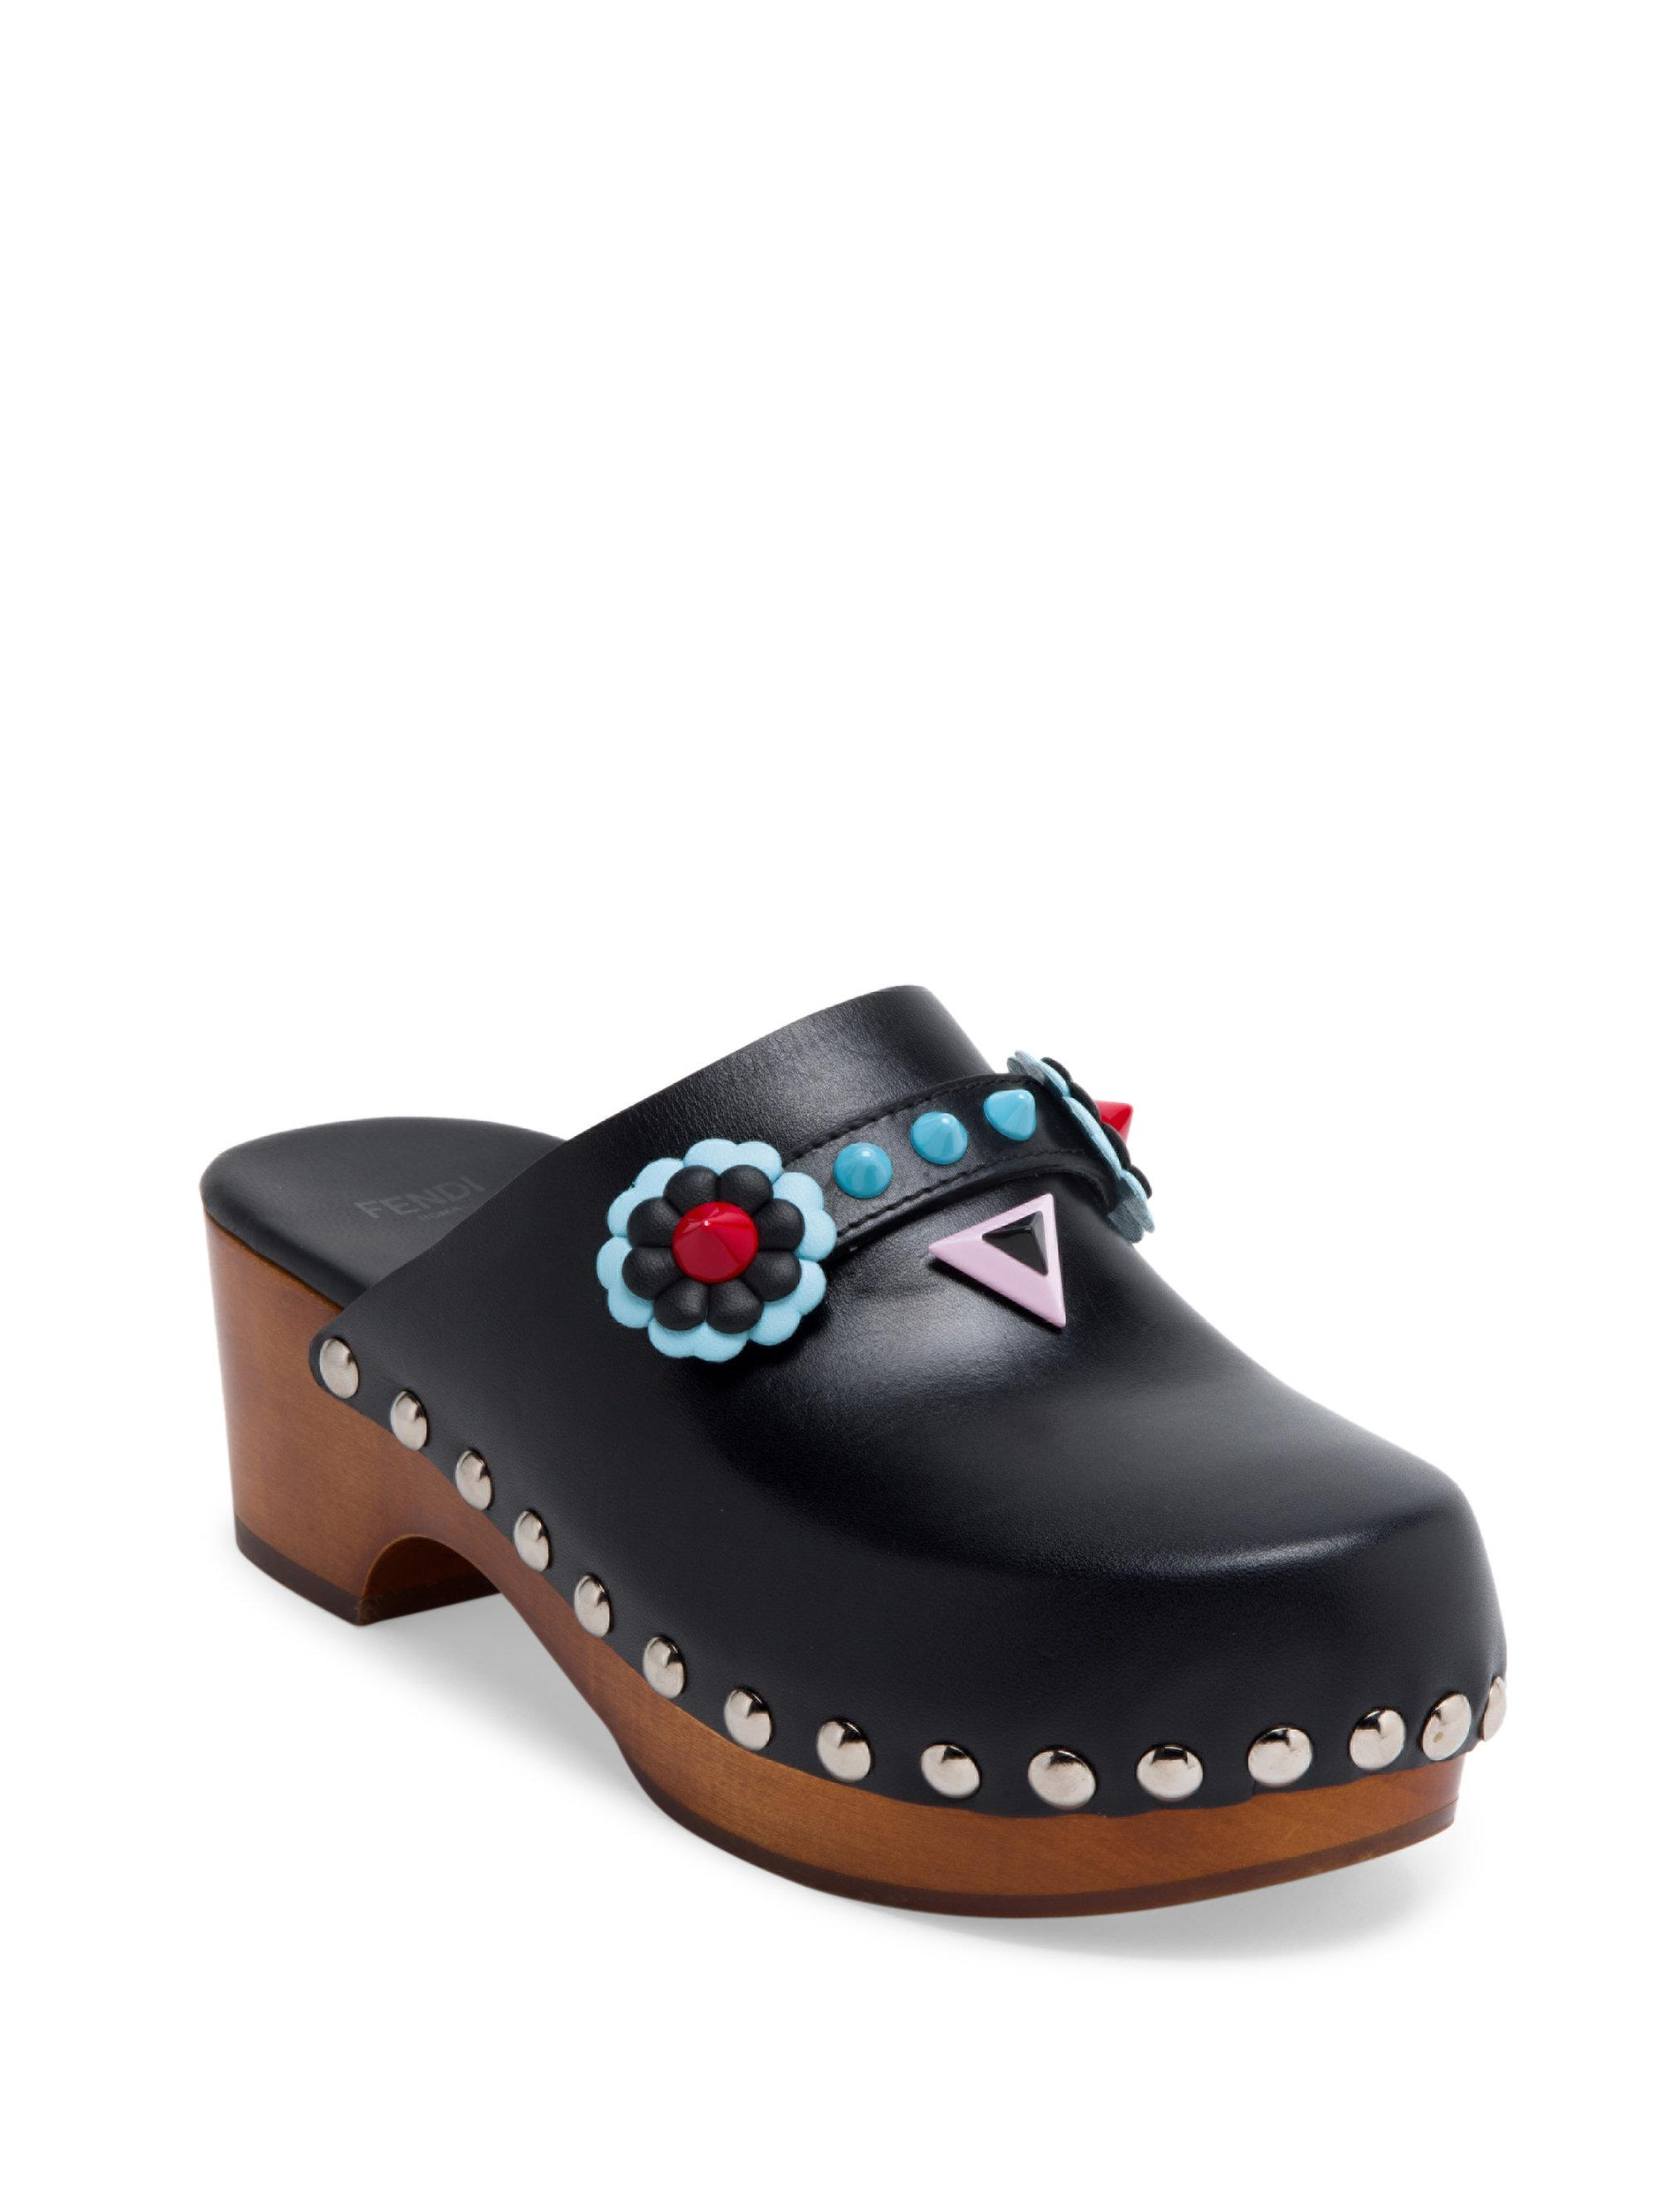 Pre-owned - LEATHER CLOGS Fendi iWhbXcs